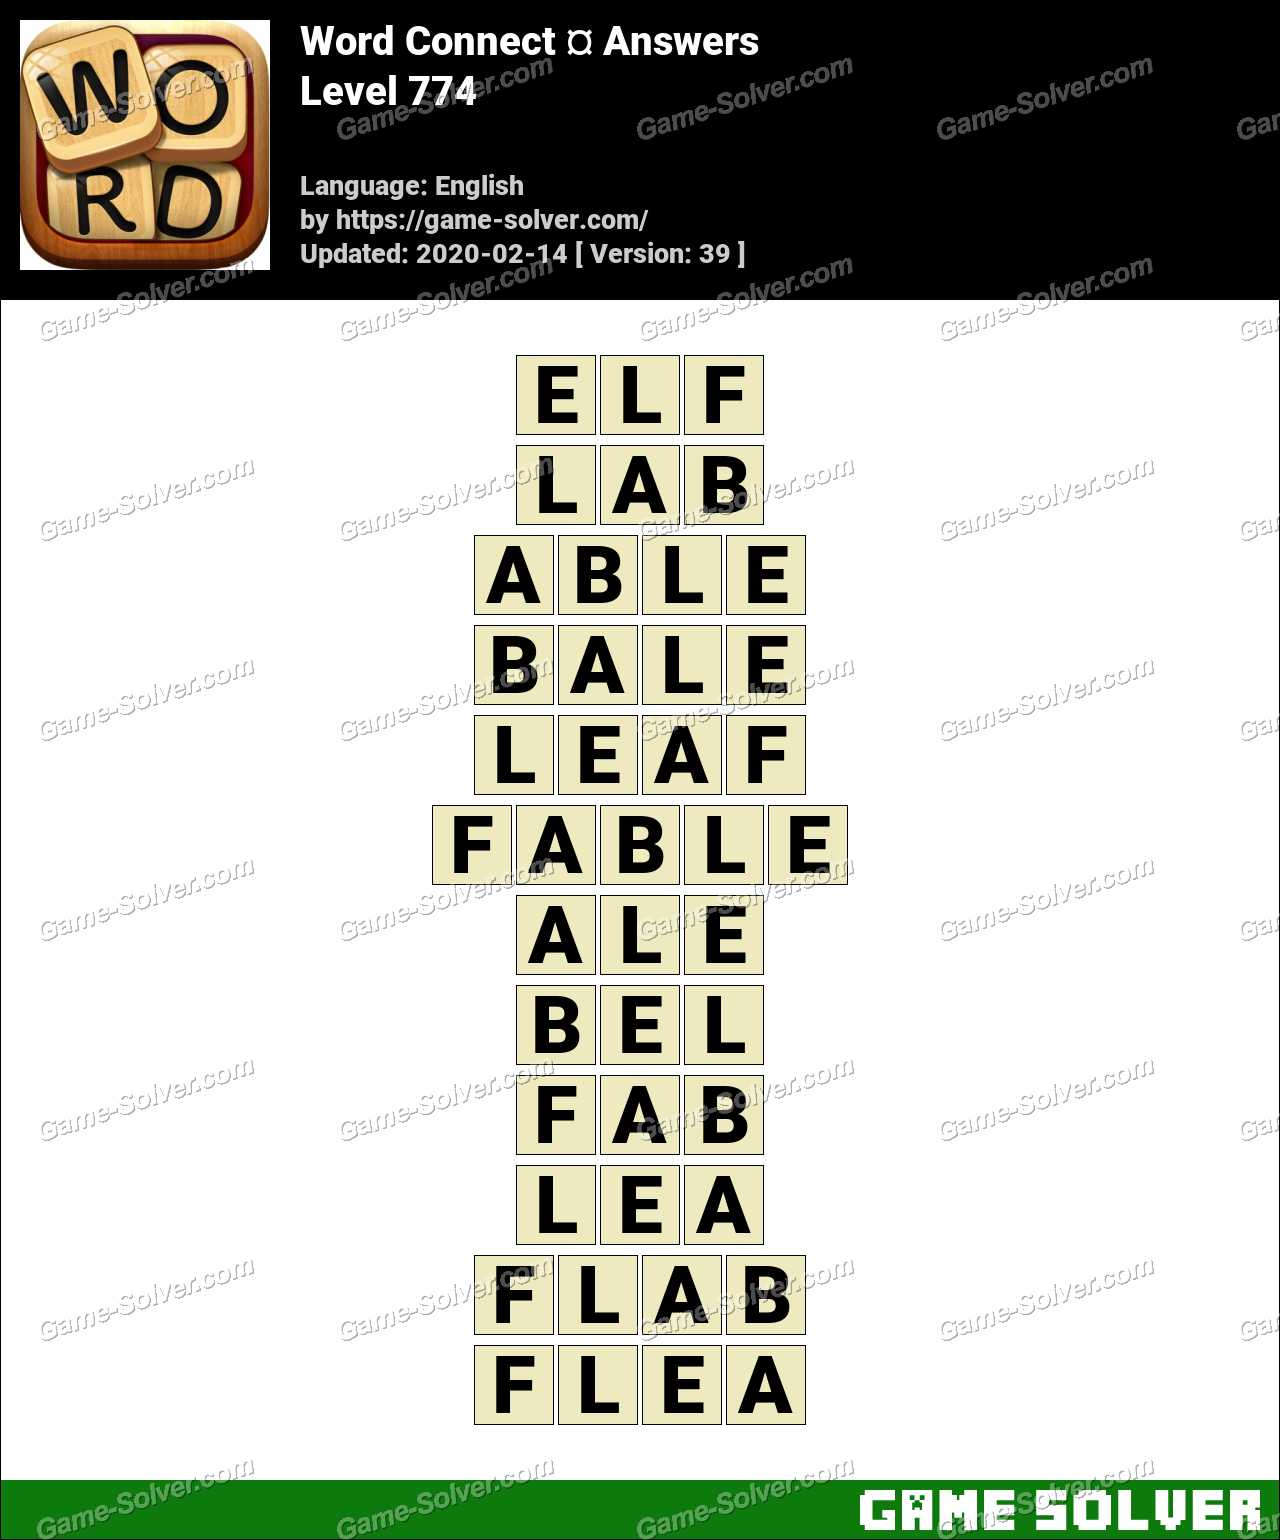 Word Connect Level 774 Answers